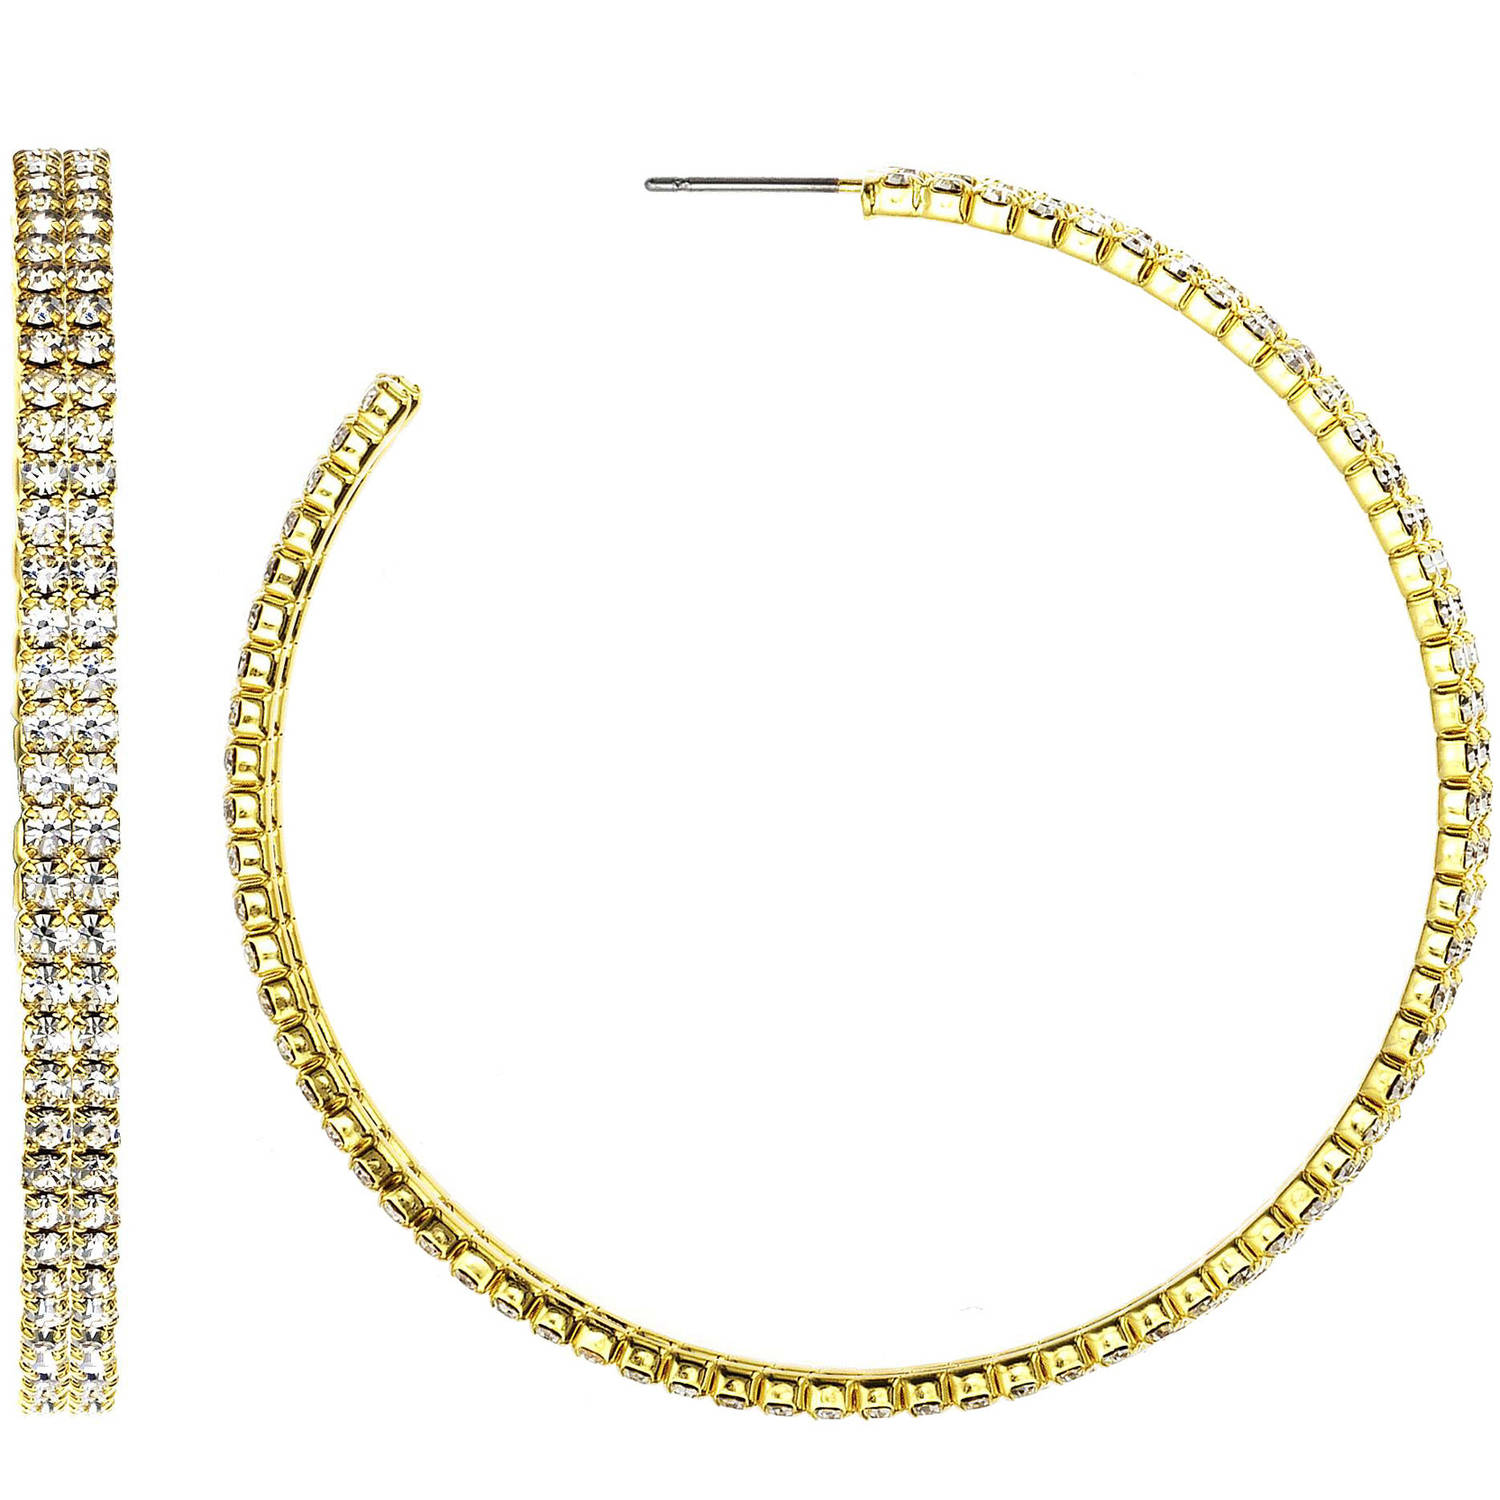 X & O Handset Austrian Crystal 14kt Gold-Plated Double-Row 55mm Hoop Earrings